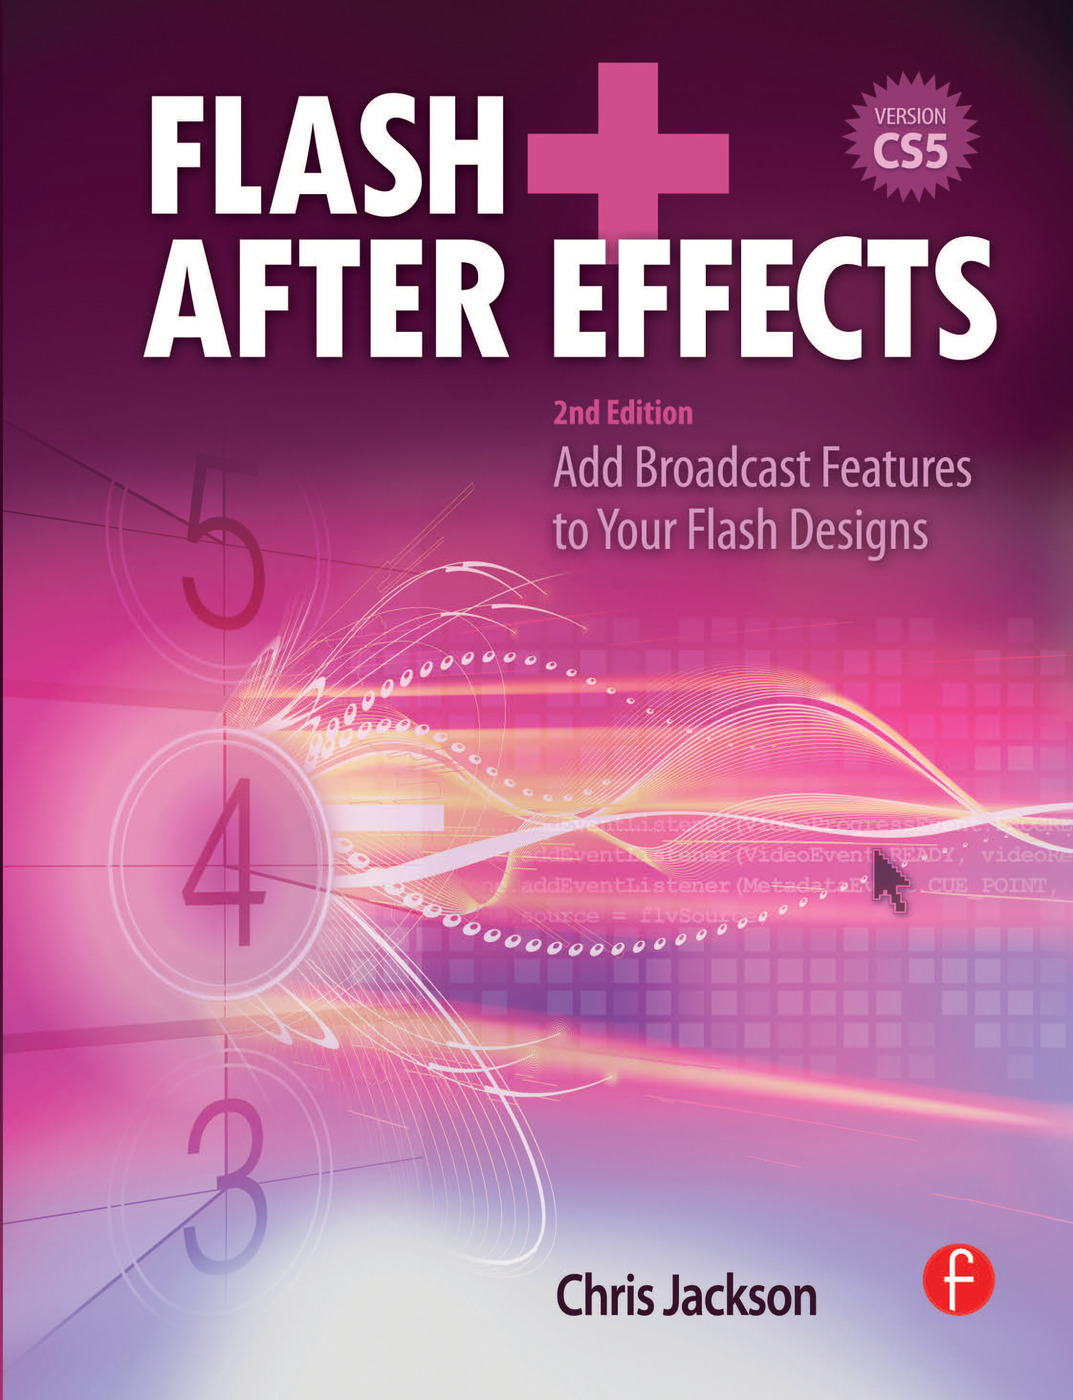 Flash + After Effects: Add Broadcast Features to Your Flash Designs, 2nd Edition (Paperback) book cover